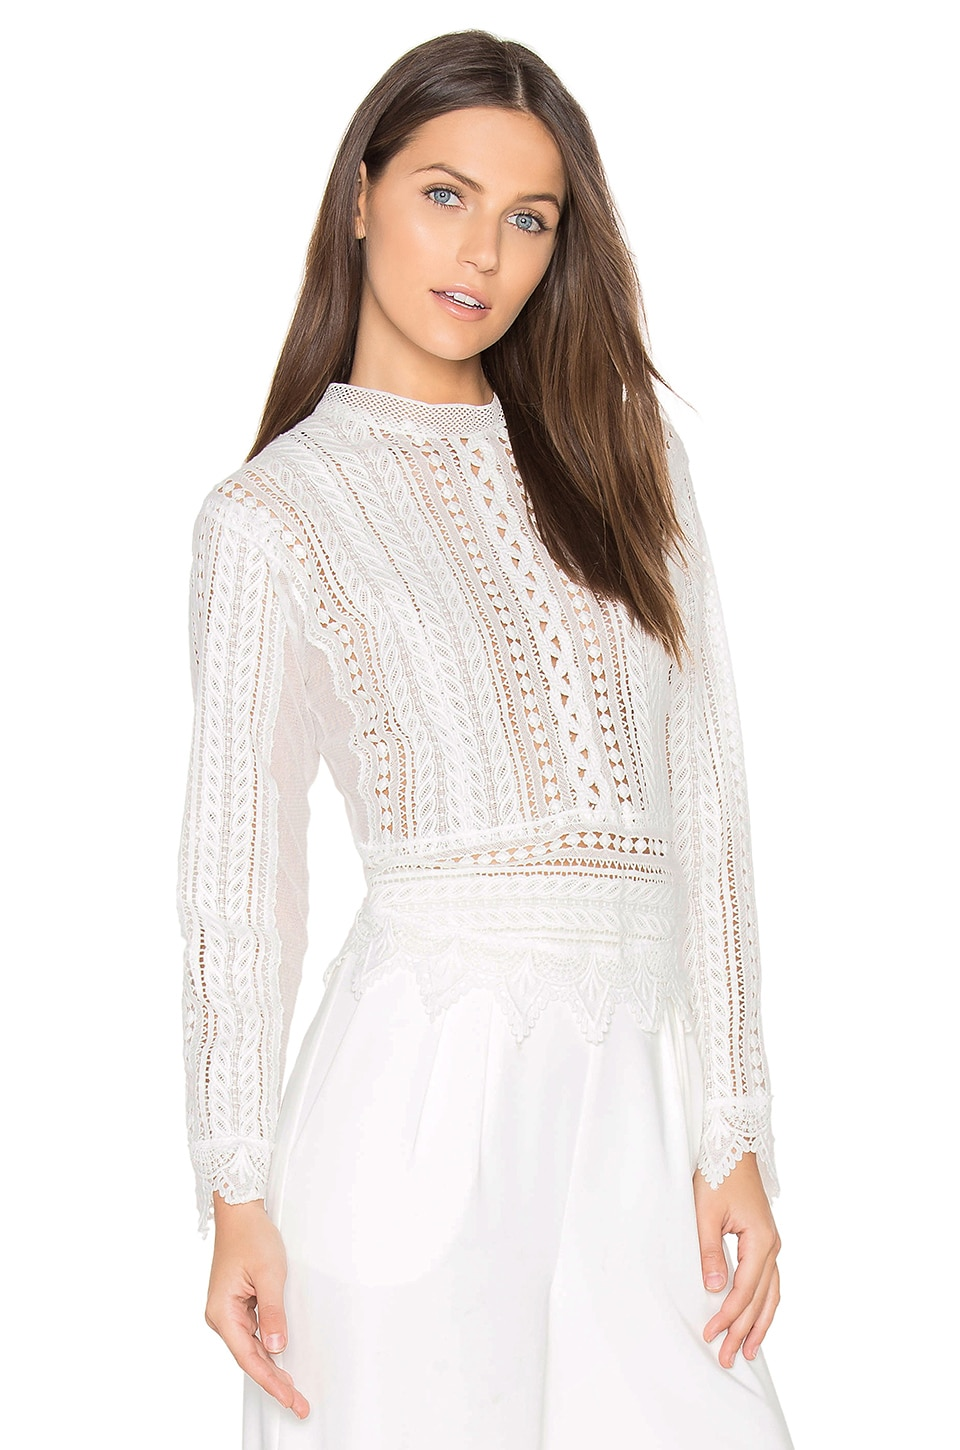 J.O.A. Crochet Top in White